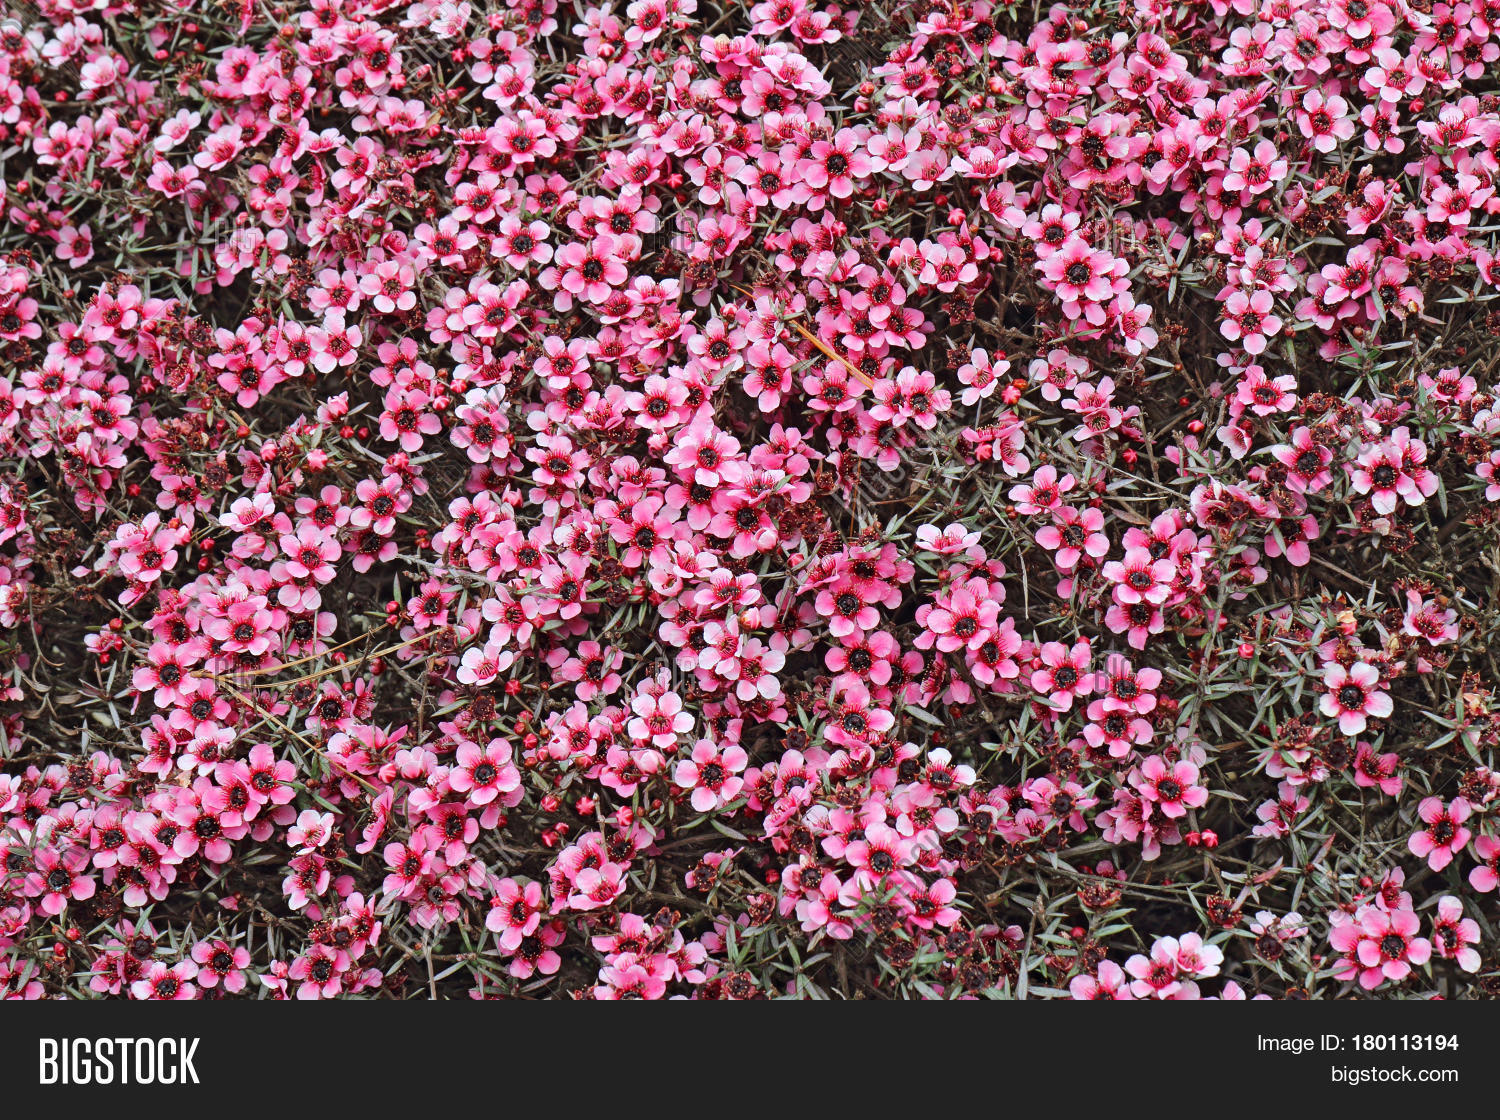 Numerous Small Pink Image Photo Free Trial Bigstock